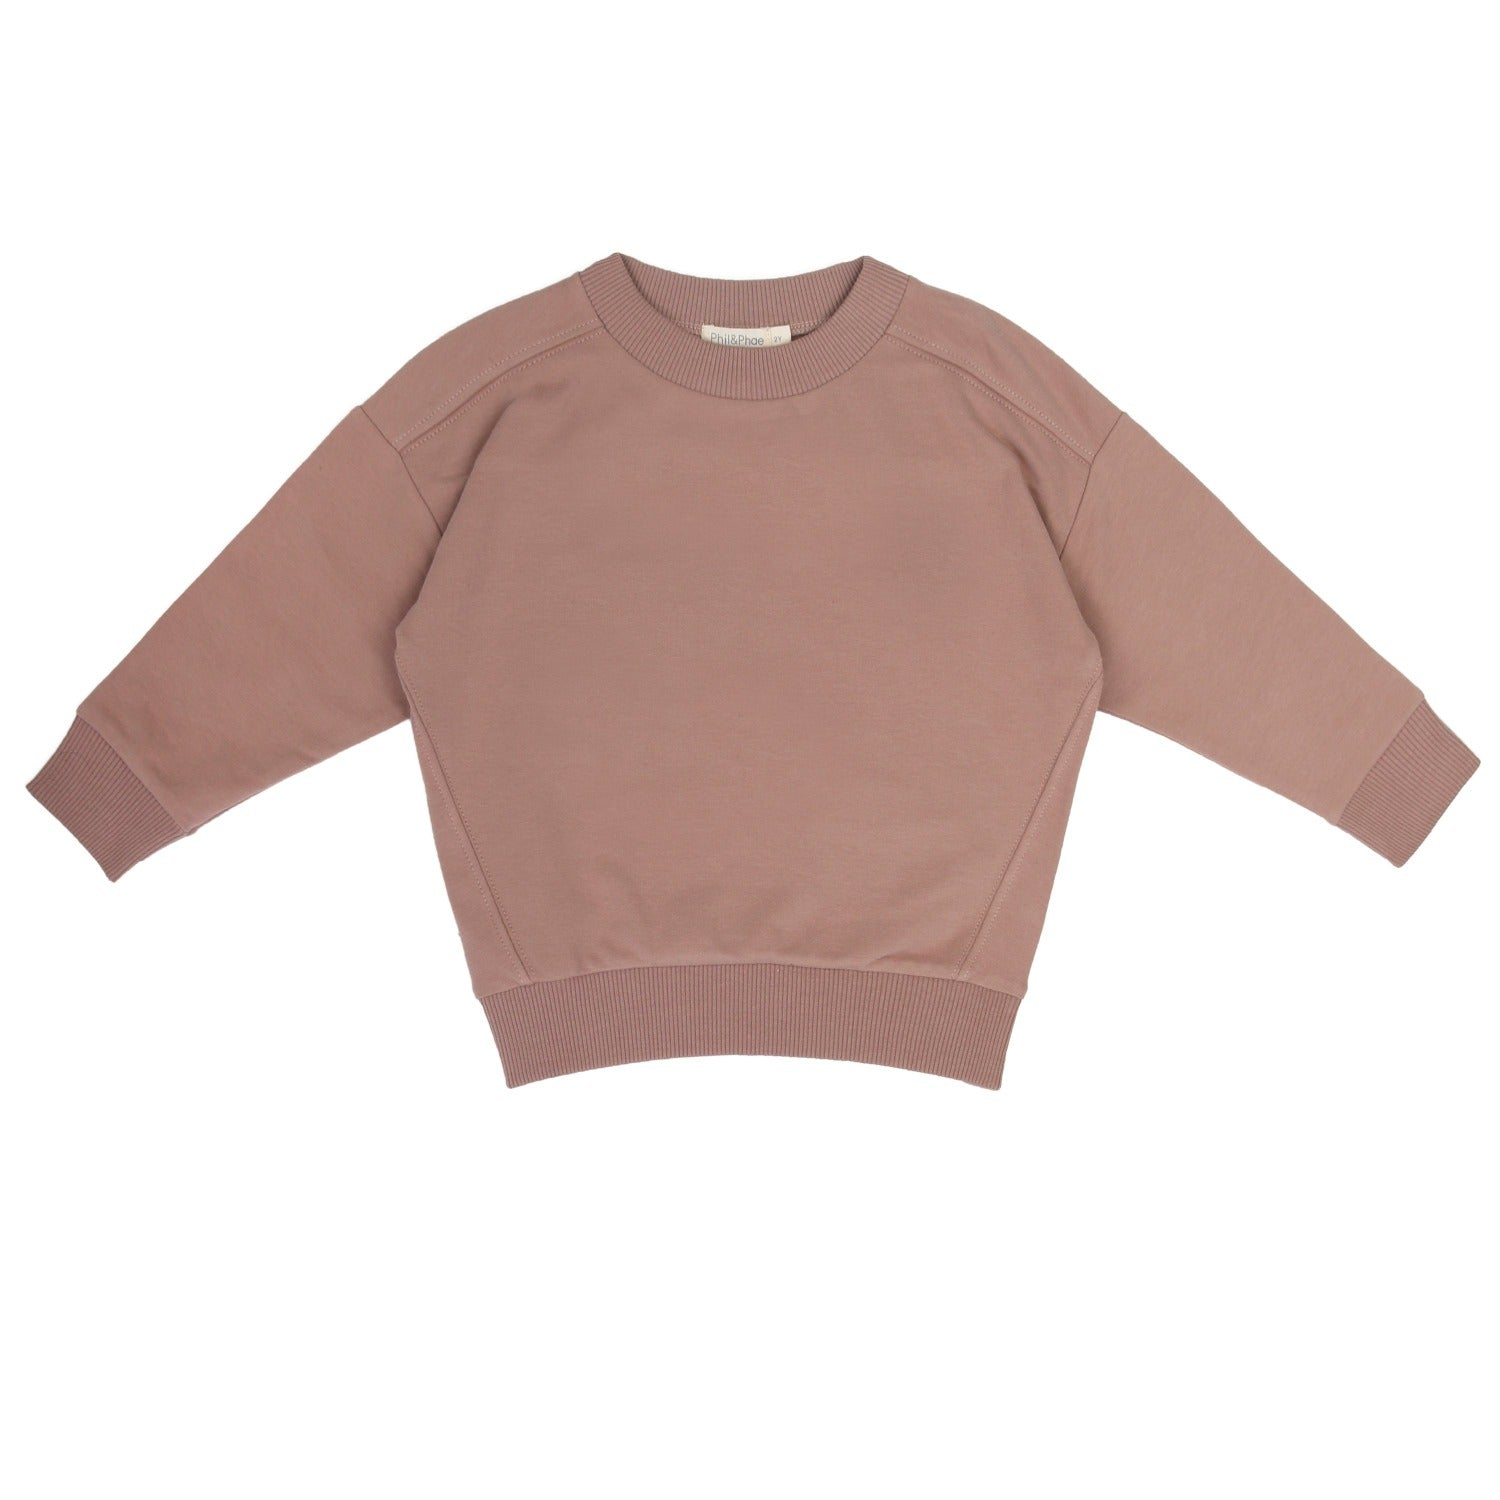 Oversize Sweater, Powder by sustainable kidswear brand Phil&Phae